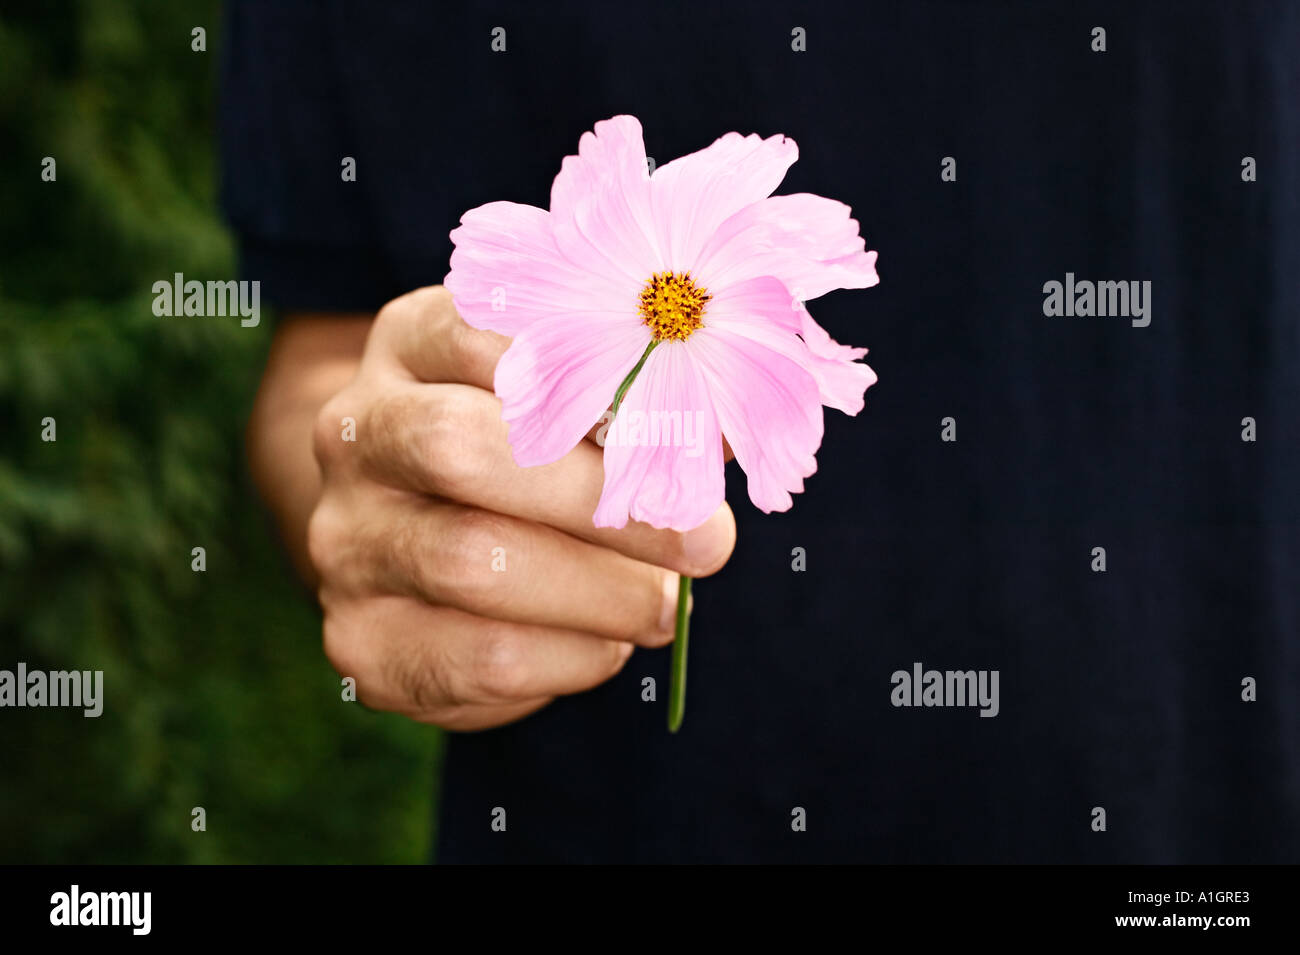 hand giving flower stock photos hand giving flower stock images